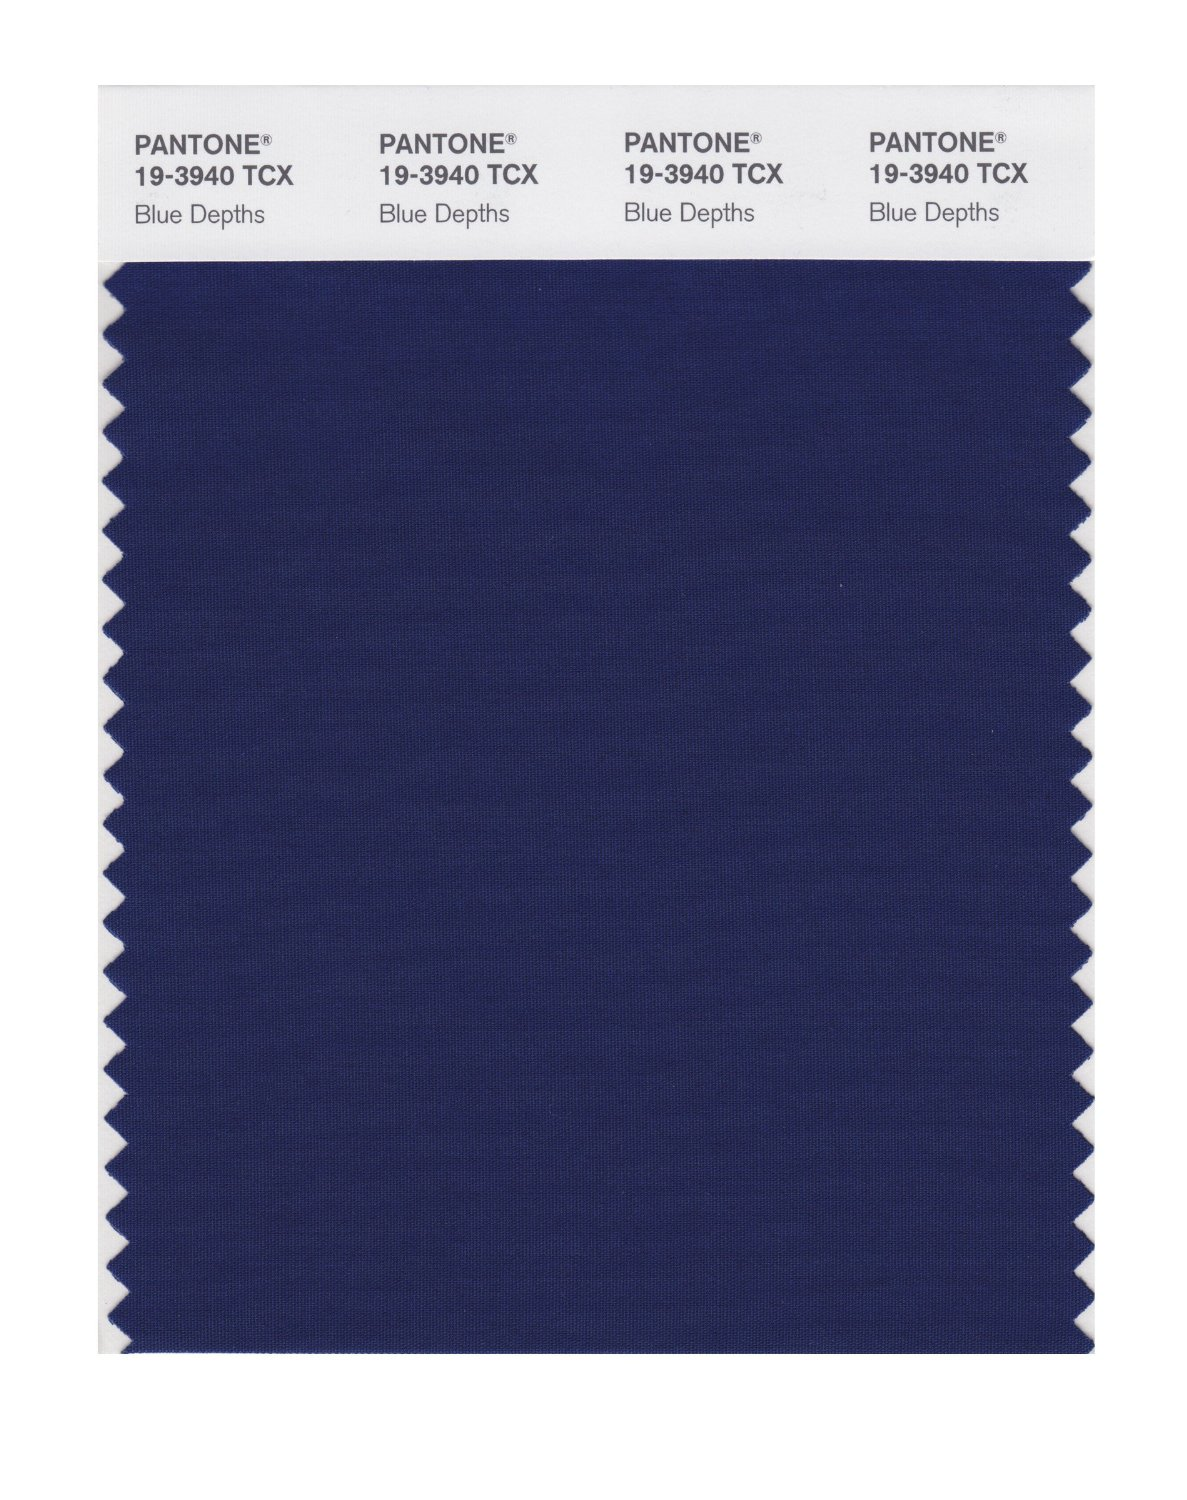 Pantone Smart Swatch 19-3940 Blue Depths